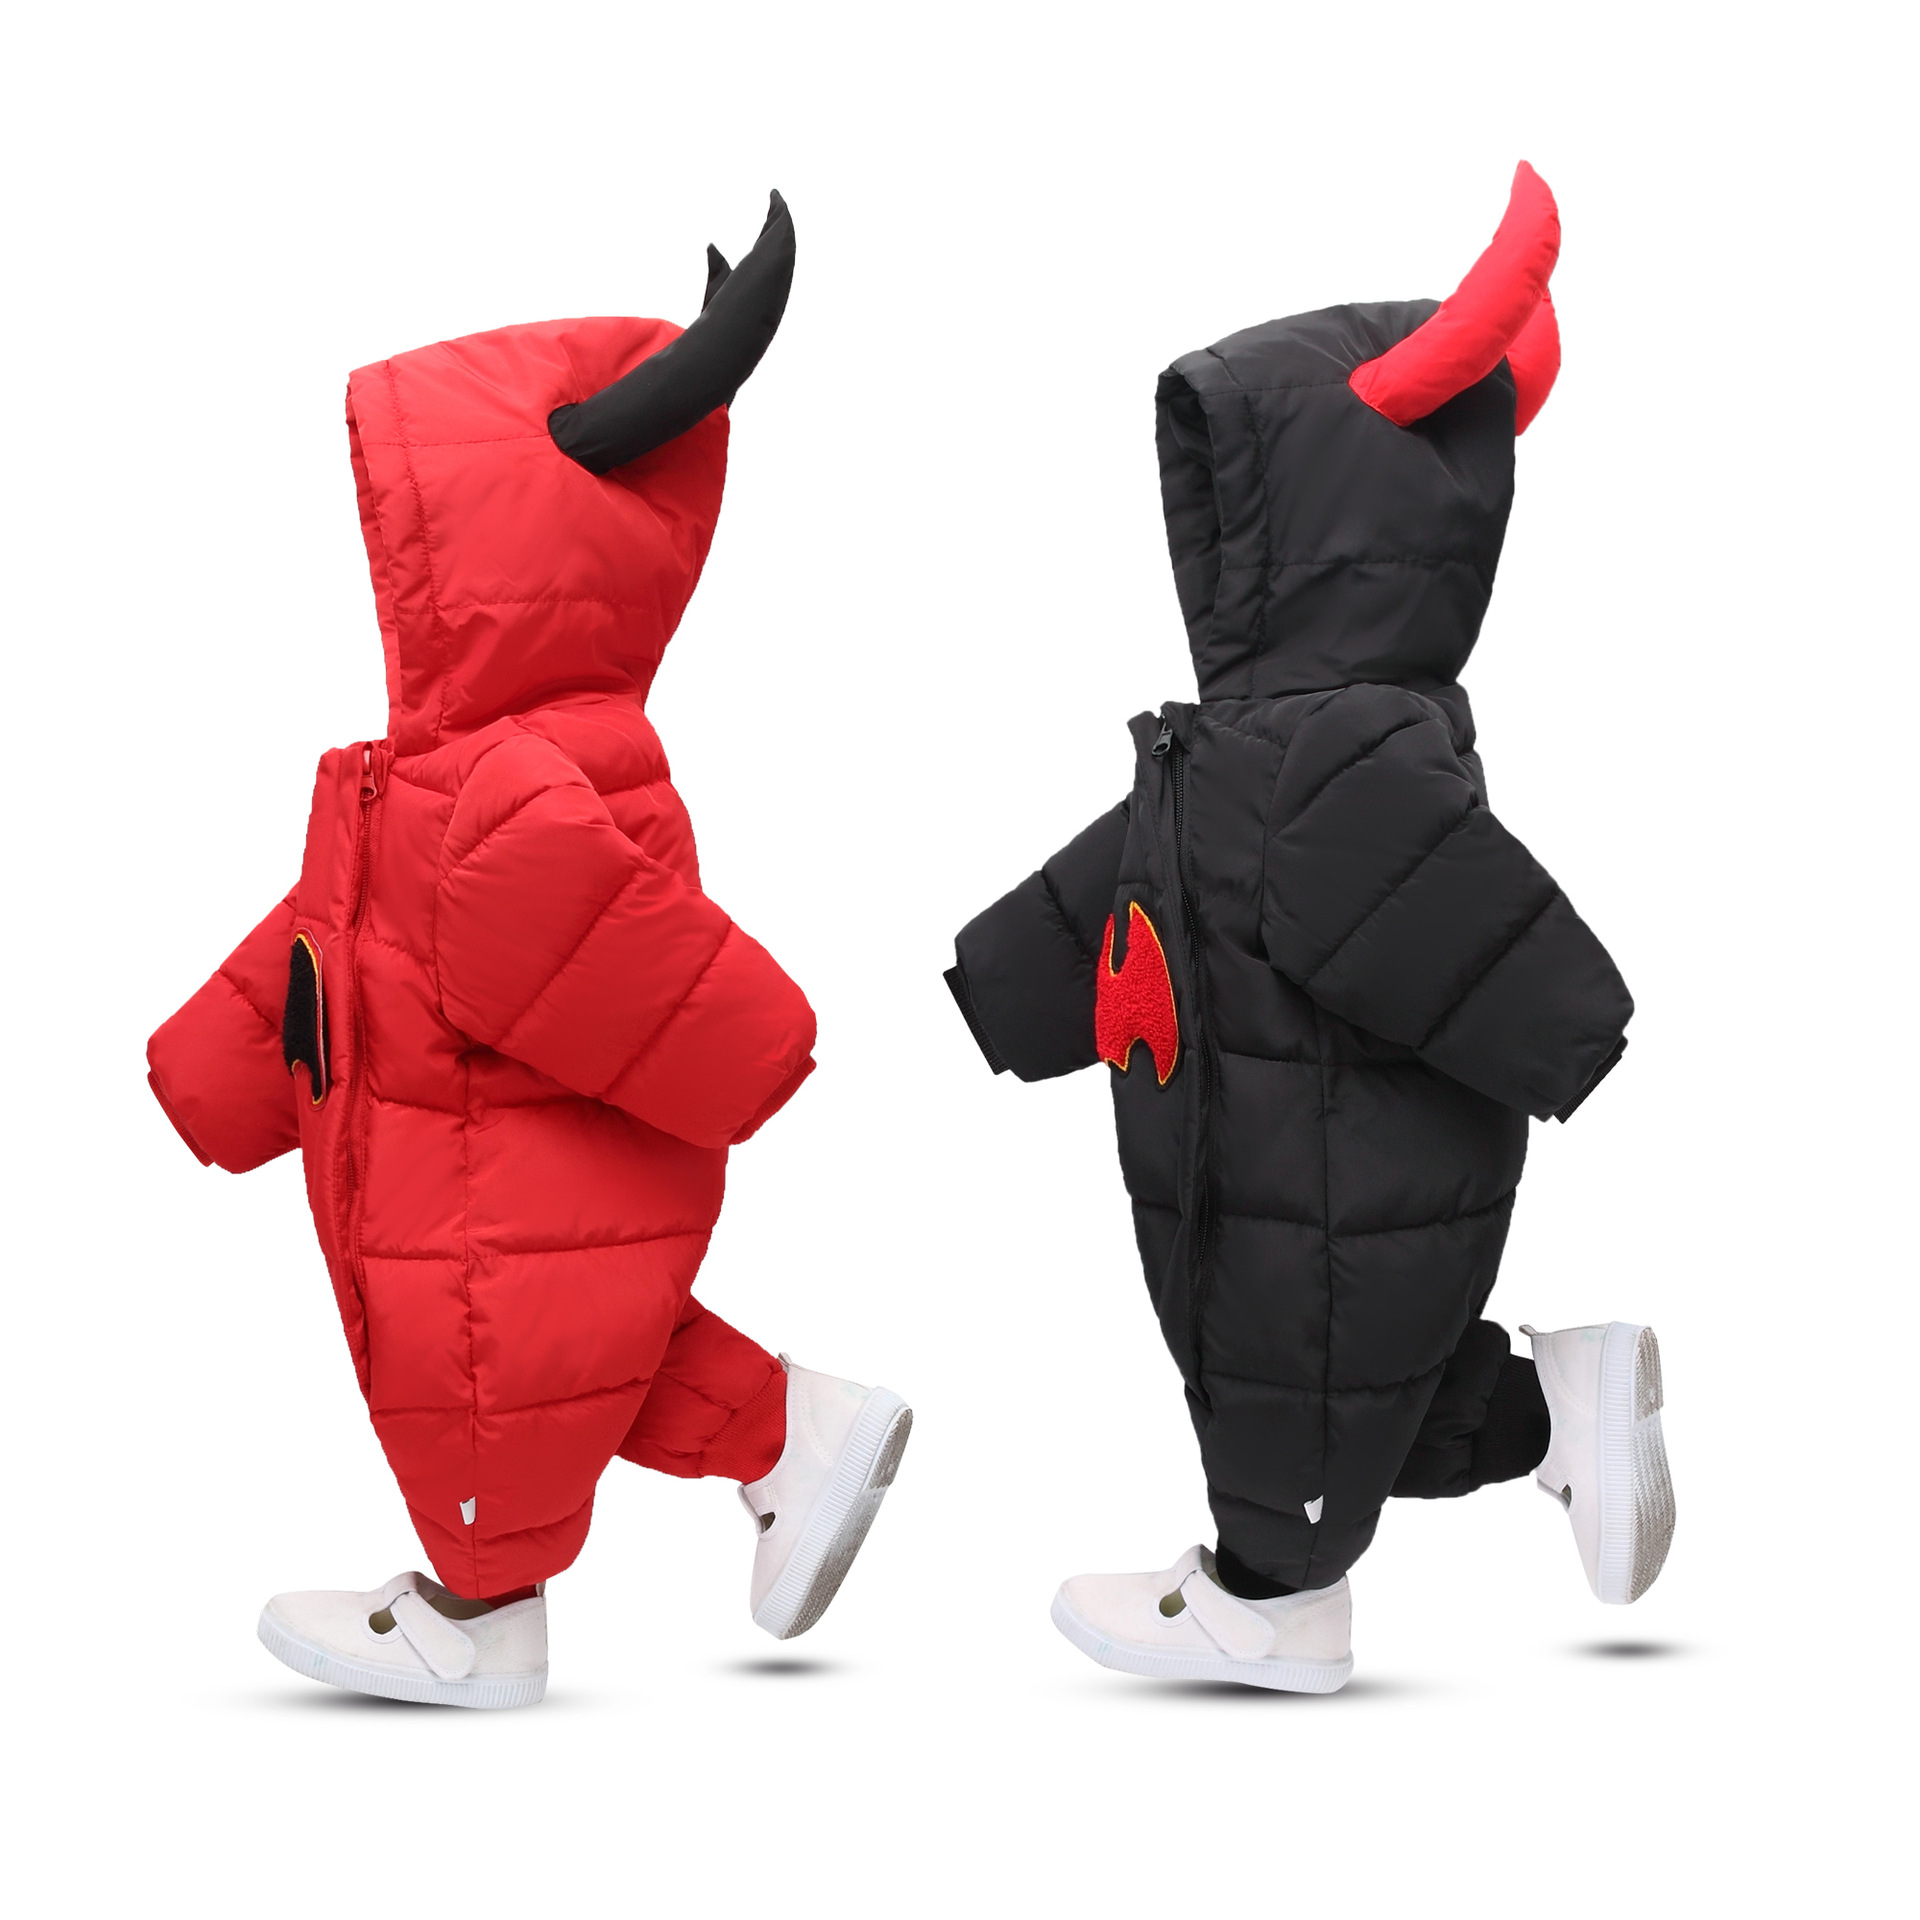 Winter Thick Warm Cartoon Baby boy Clothing High quality 2017 NEW Baby Rompers Long Sleeve Hooded Jumpsuit Kids Newborn Outwear winter baby rompers organic cotton baby hooded snowsuit jumpsuit long sleeve thick warm baby girls boy romper newborn clothing